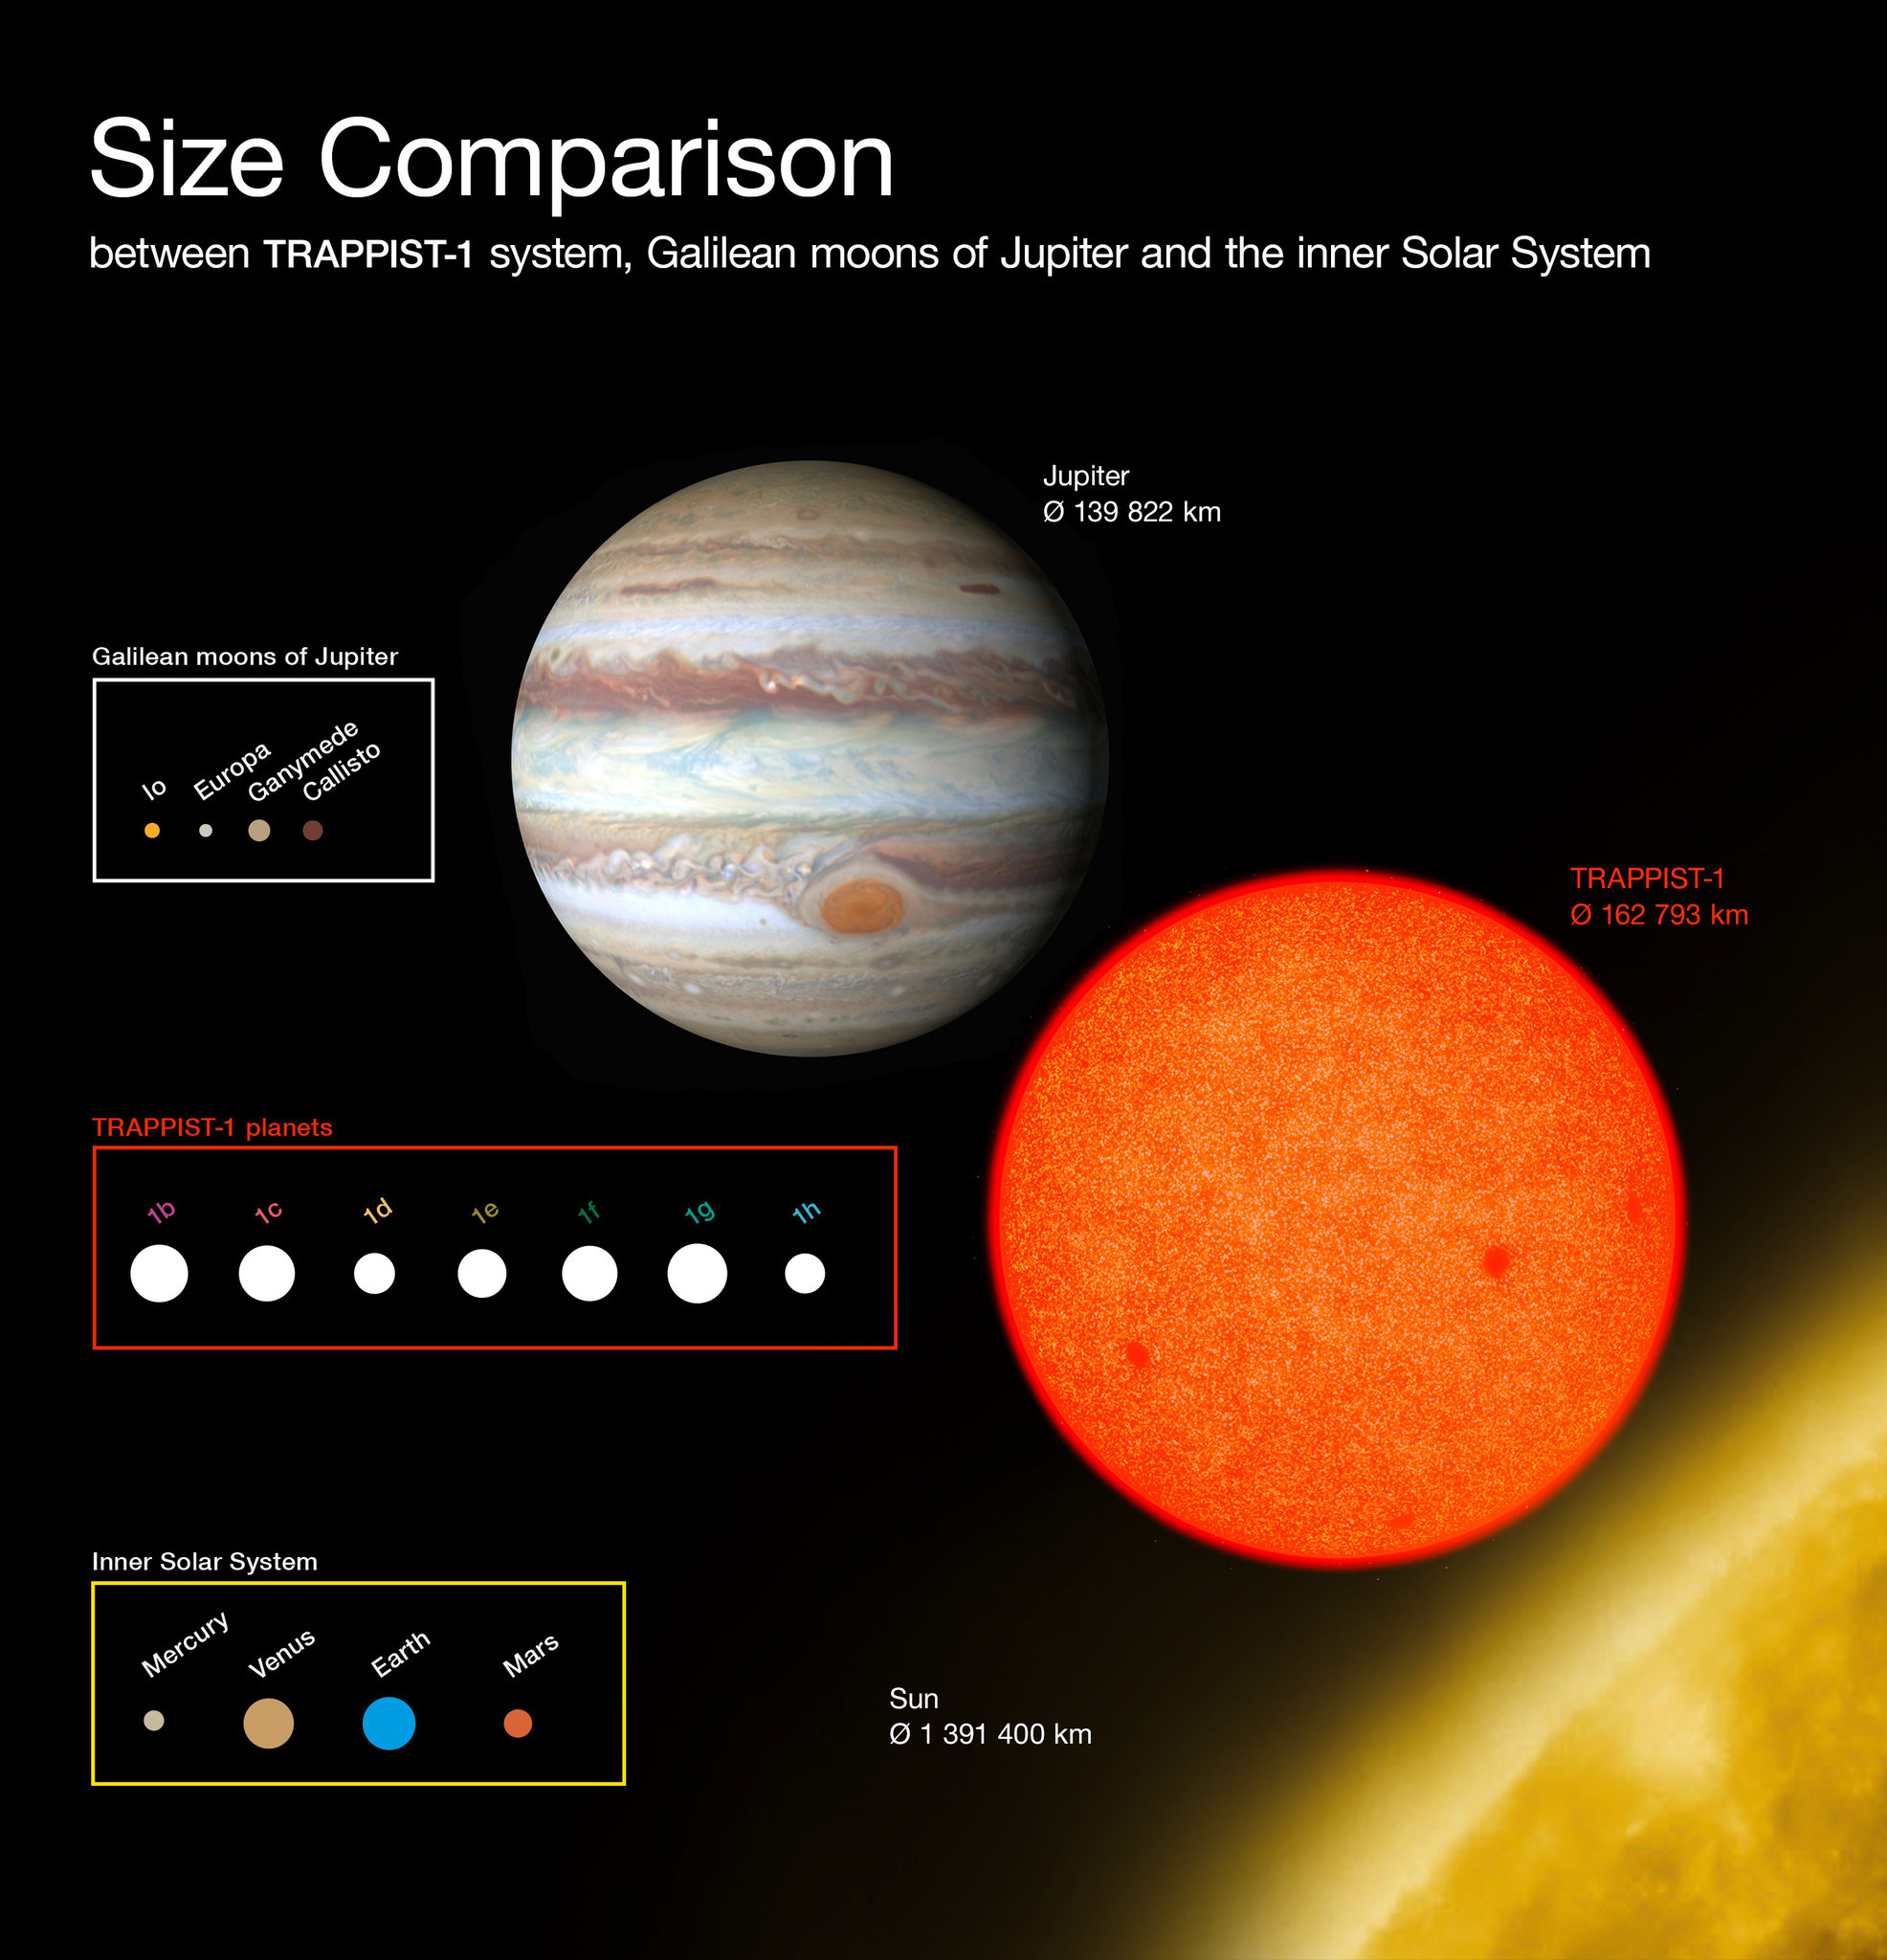 This diagram compares the sizes of the newly discovered planets around the faint red star TRAPPIST-1 with the Galilean moons of Jupiter and the inner Solar System. All the planets found around TRAPPIST-1 are of similar size to the Earth.